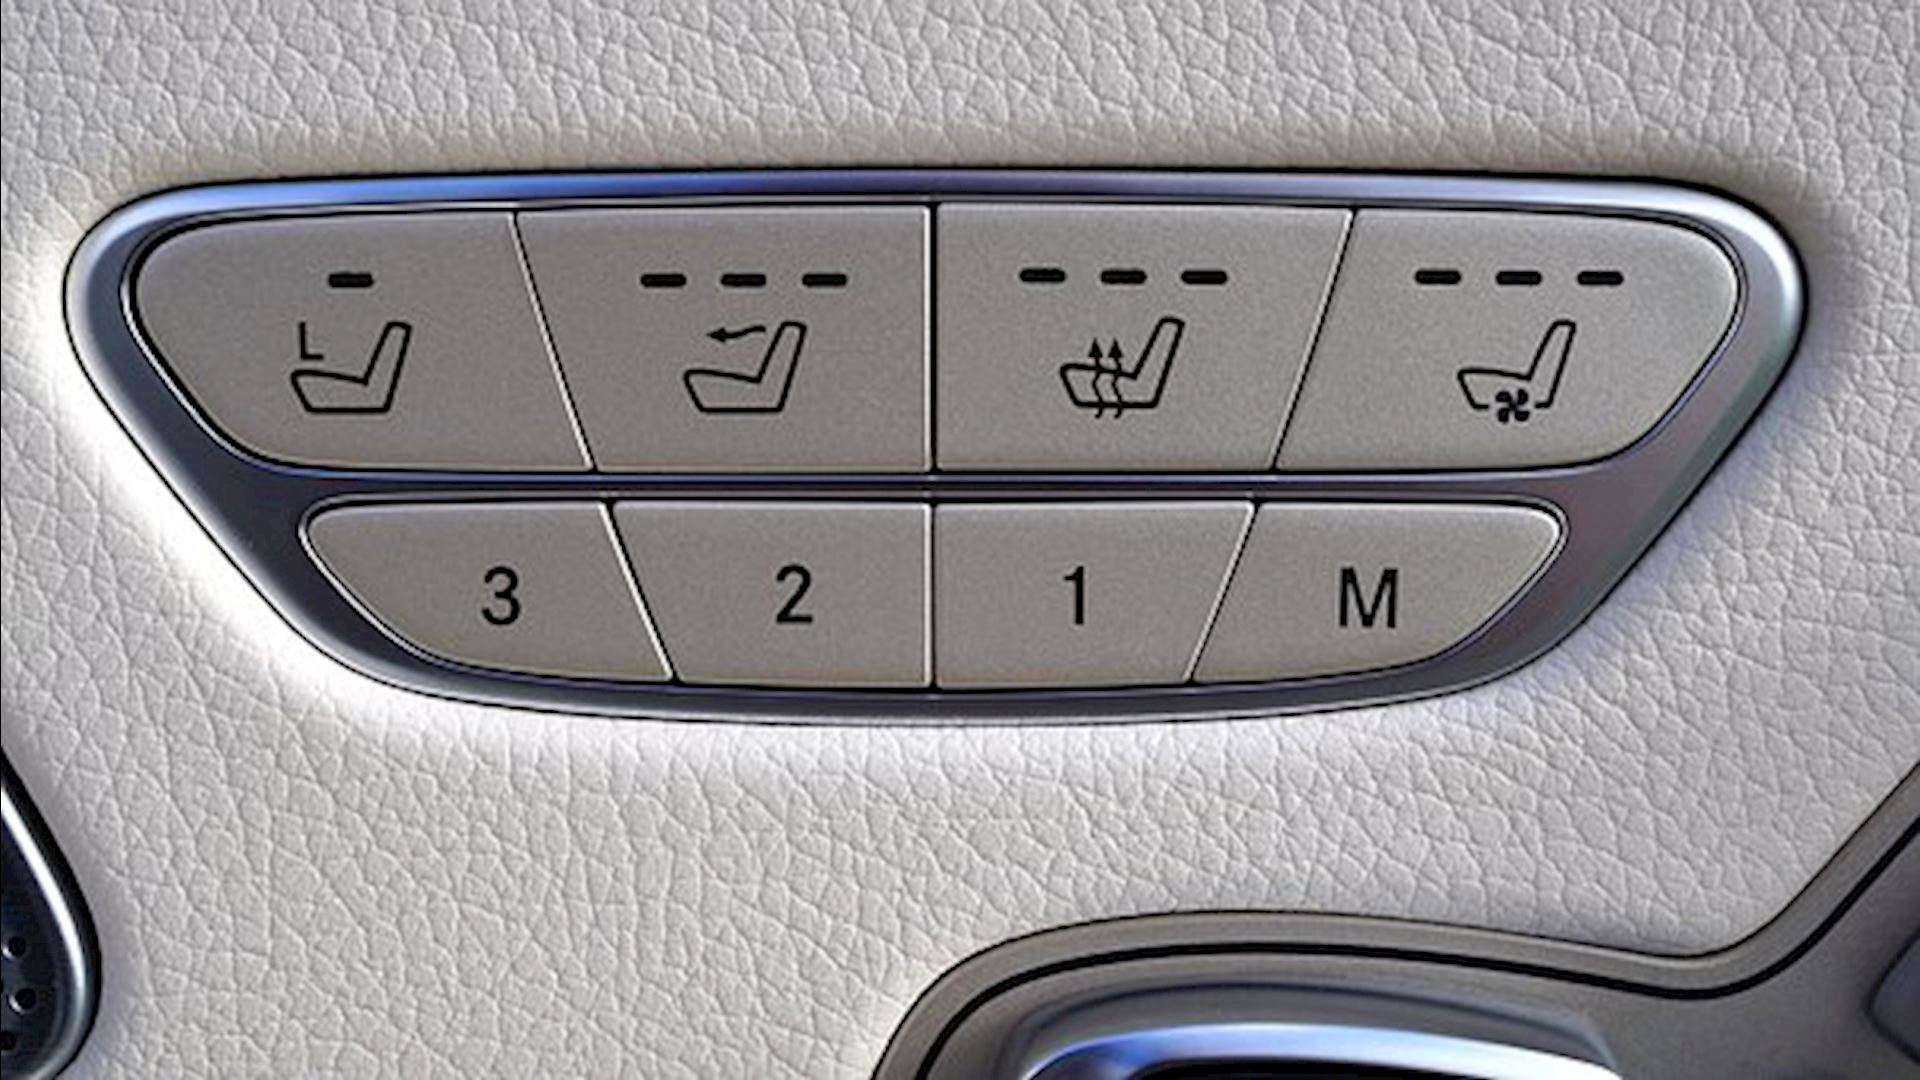 Do Your Heated Car Seats Use More Gas?